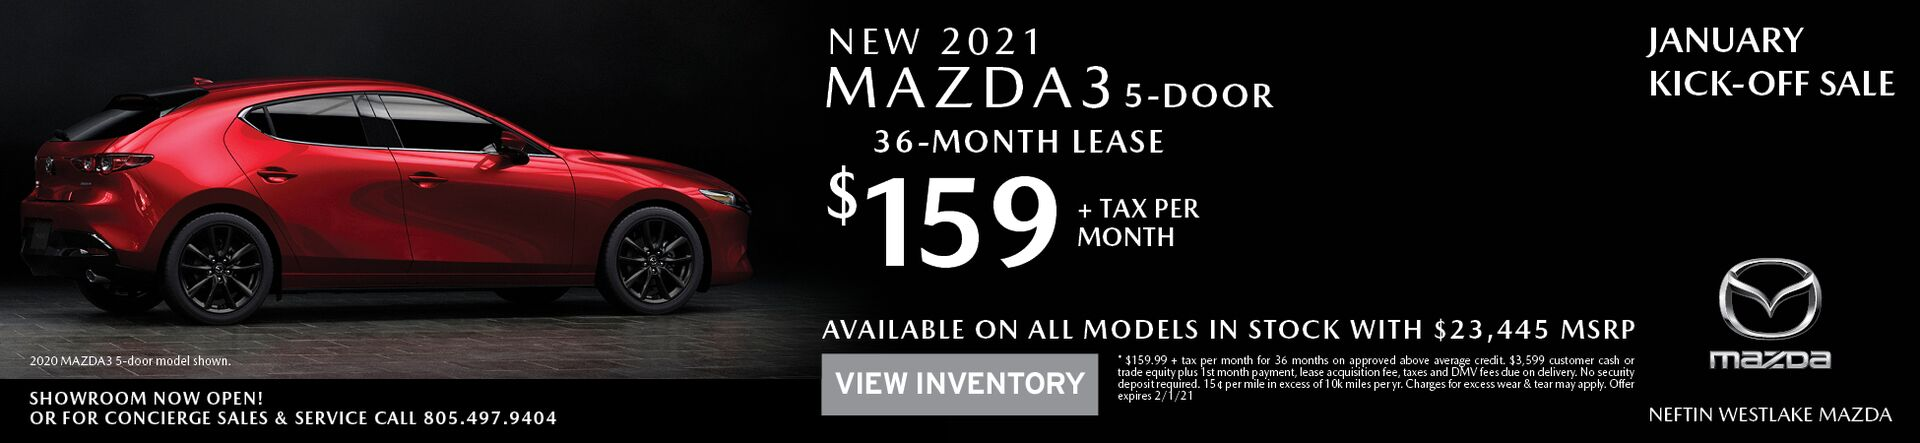 January '21 Mazda3 HB Lease Offer